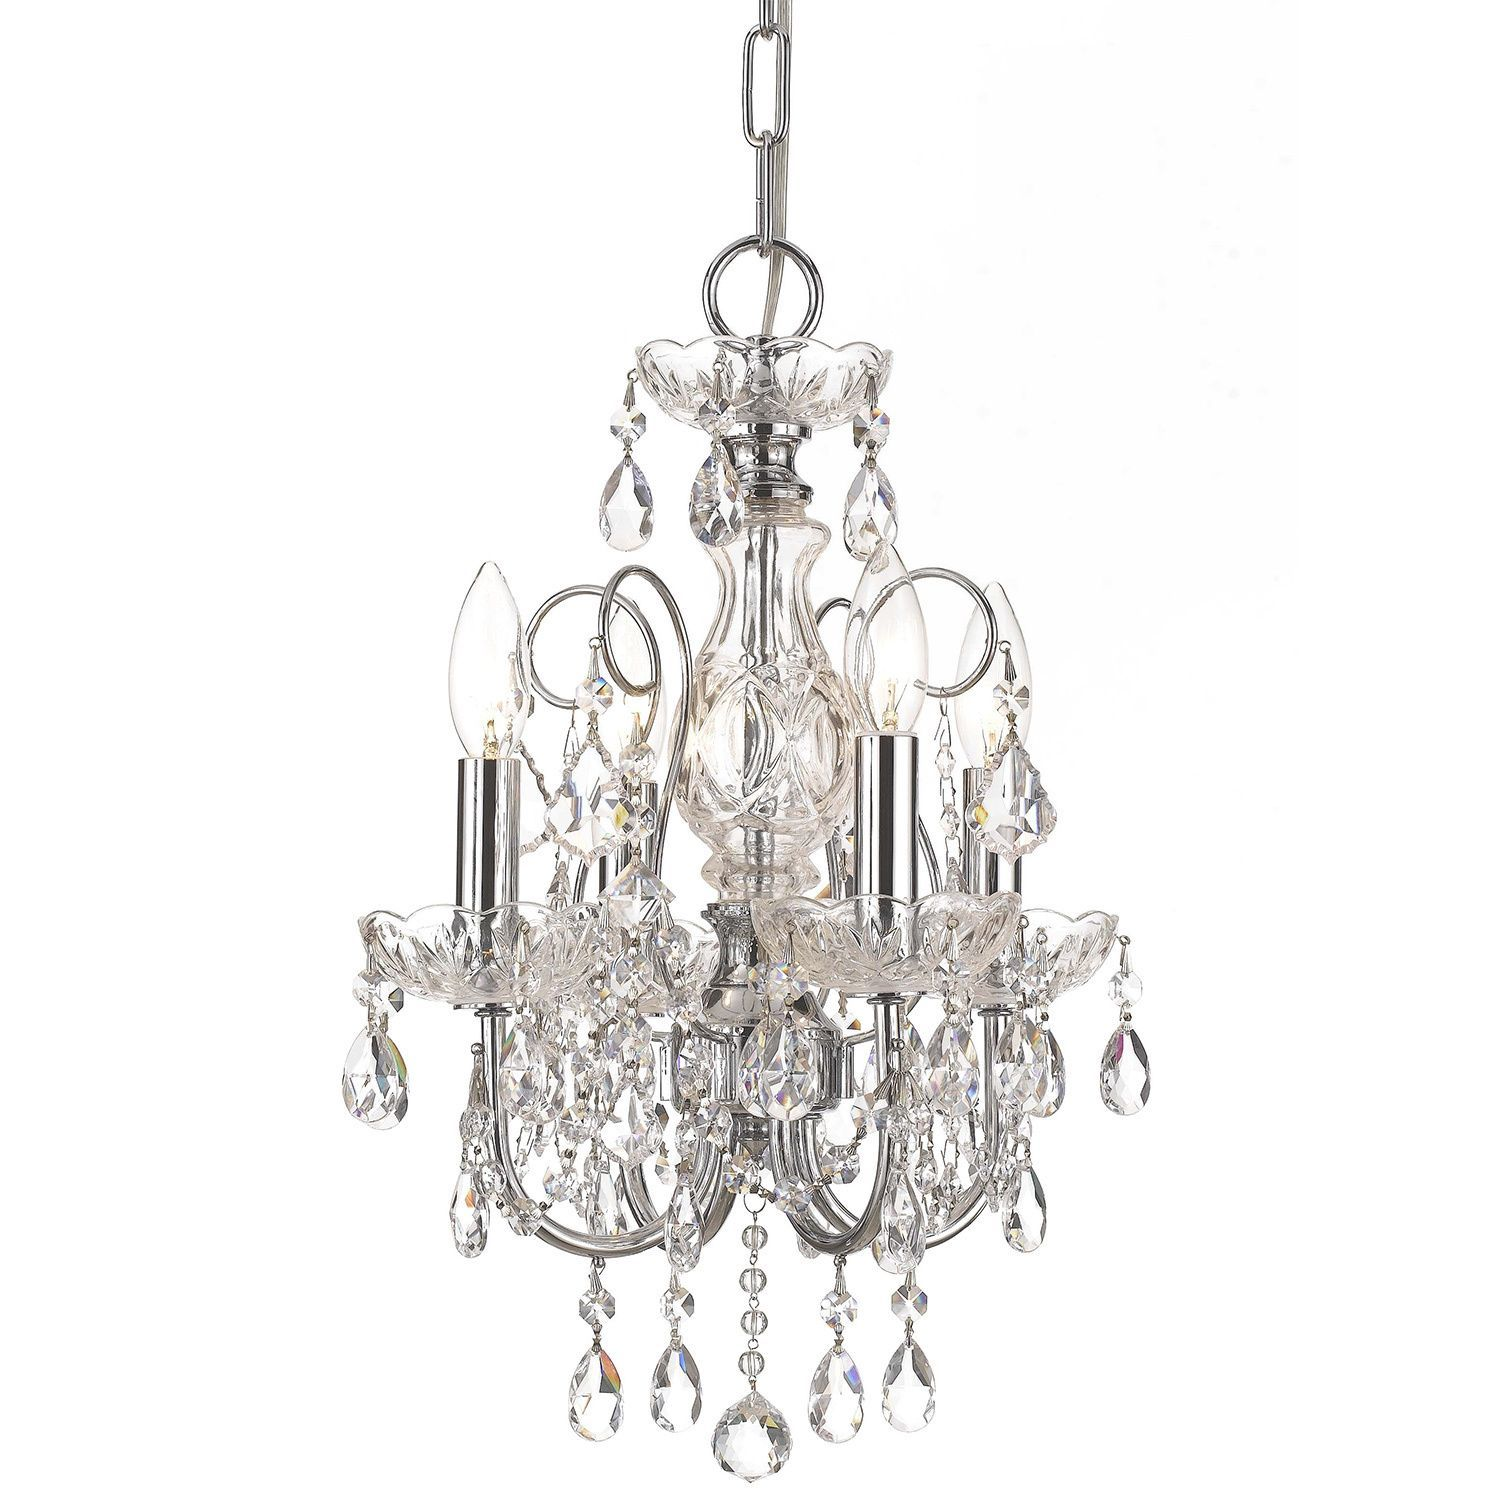 Crystorama imperial collection light polished chrome chandelier